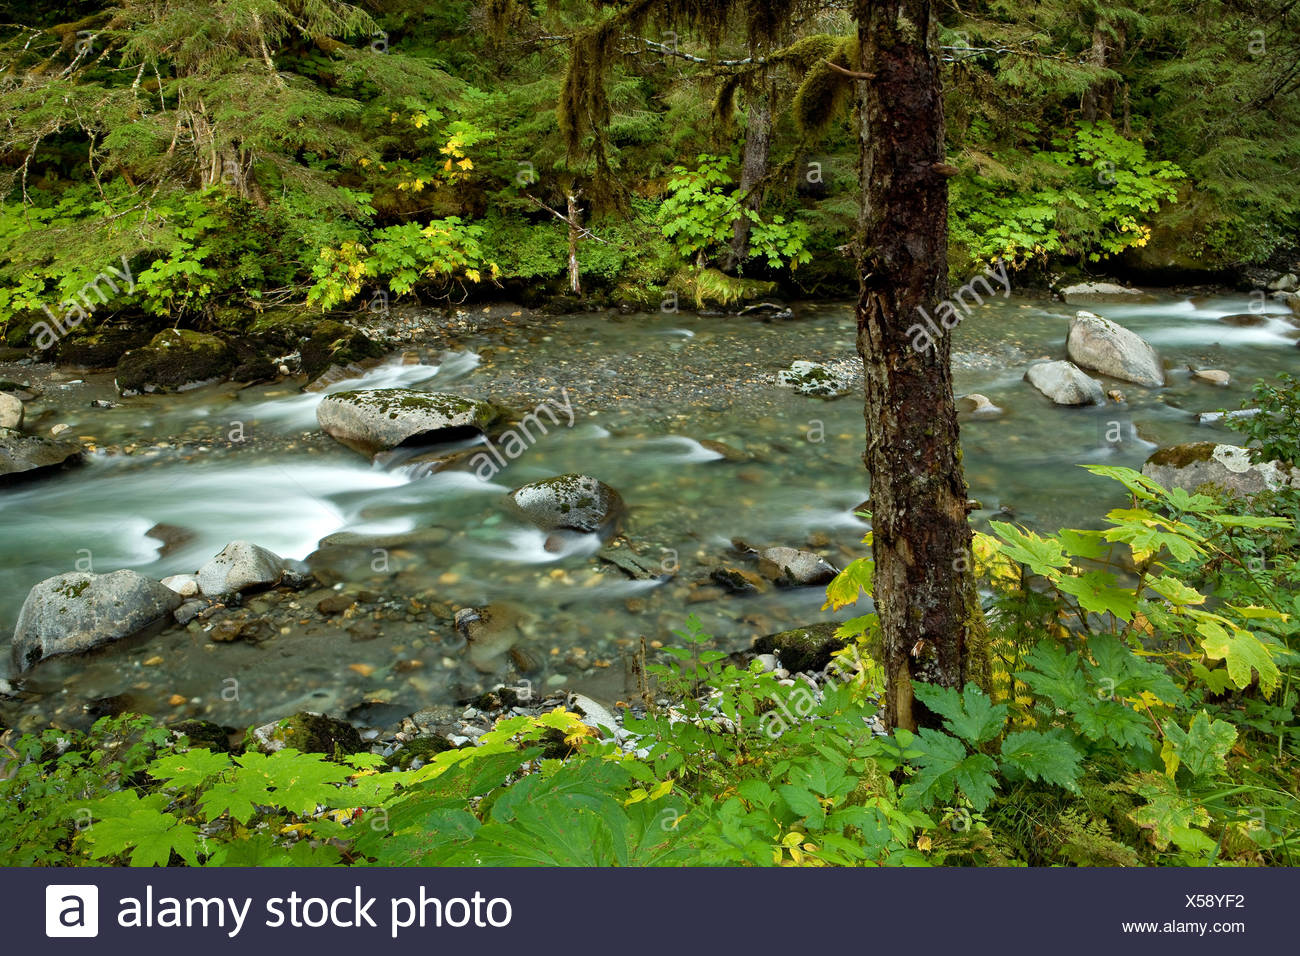 Small mountain stream in Tongass National Forest, Alaska - Stock Image